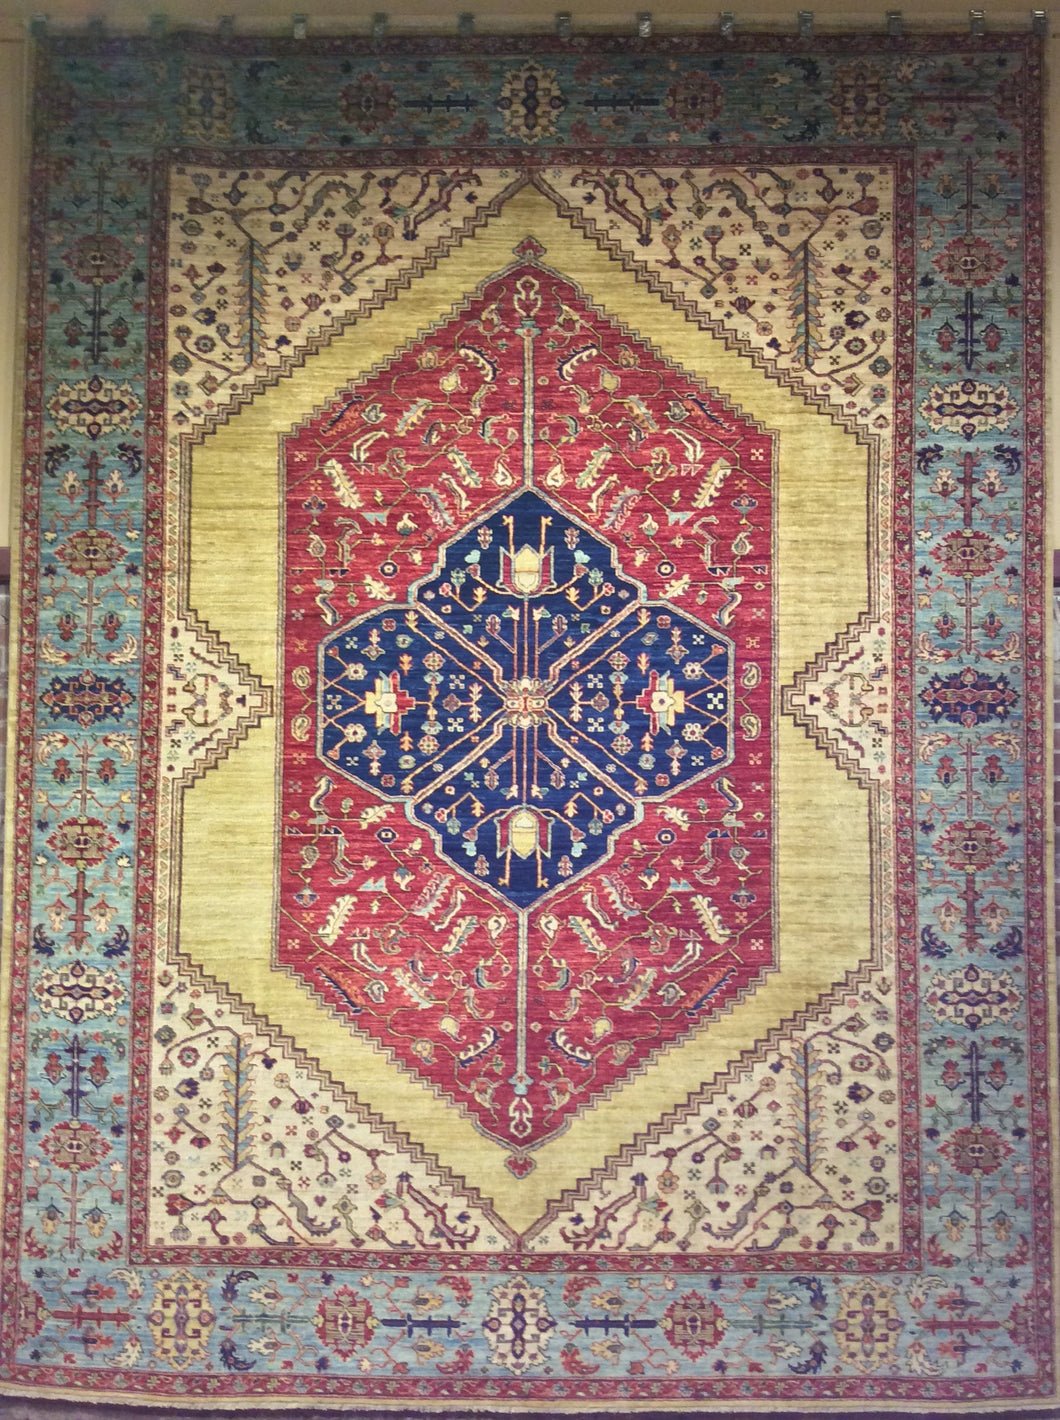 Tribal Sarapi Rug. 12' x 9'.1